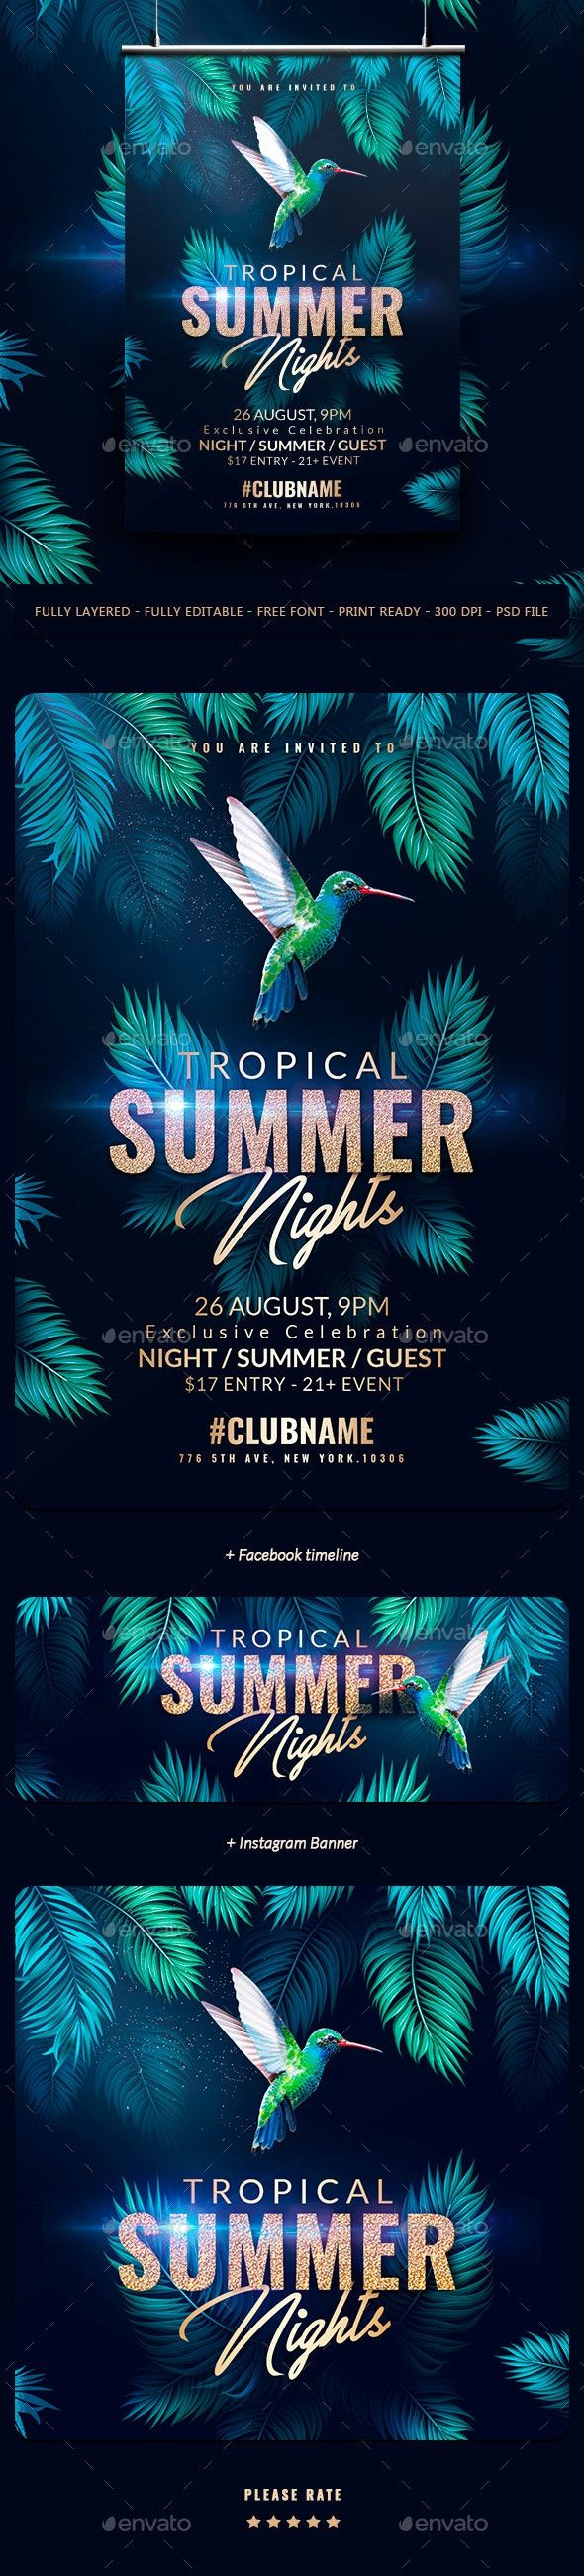 With This Flyer Template  You Can Advertise Your Summer Or